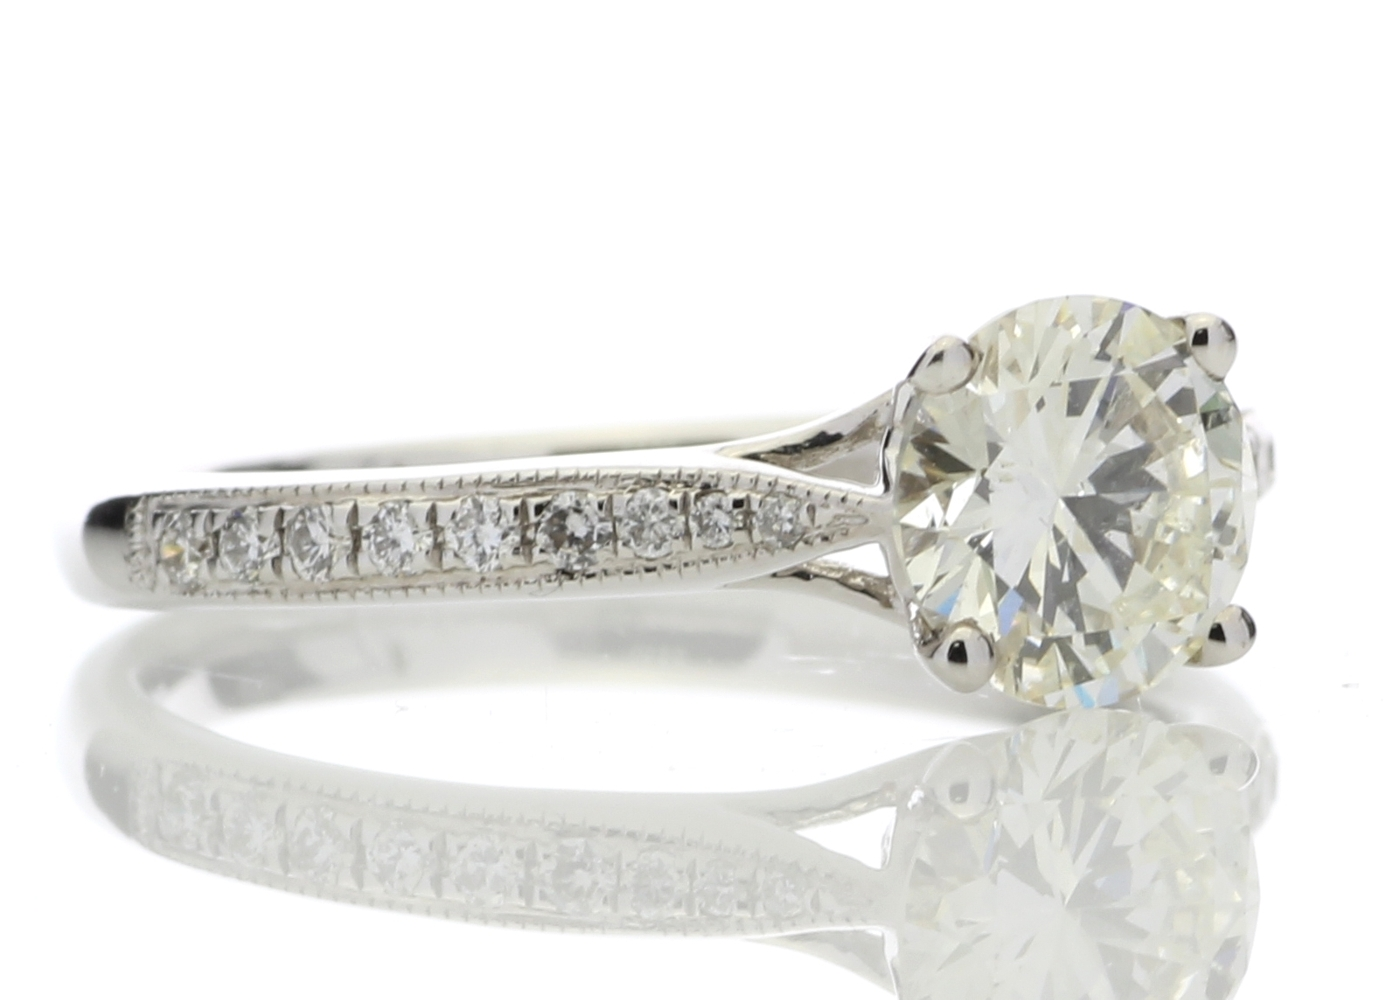 Lot 23 - 18ct White Gold Diamond Ring With Stone Set Shoulders 1.15 Carats